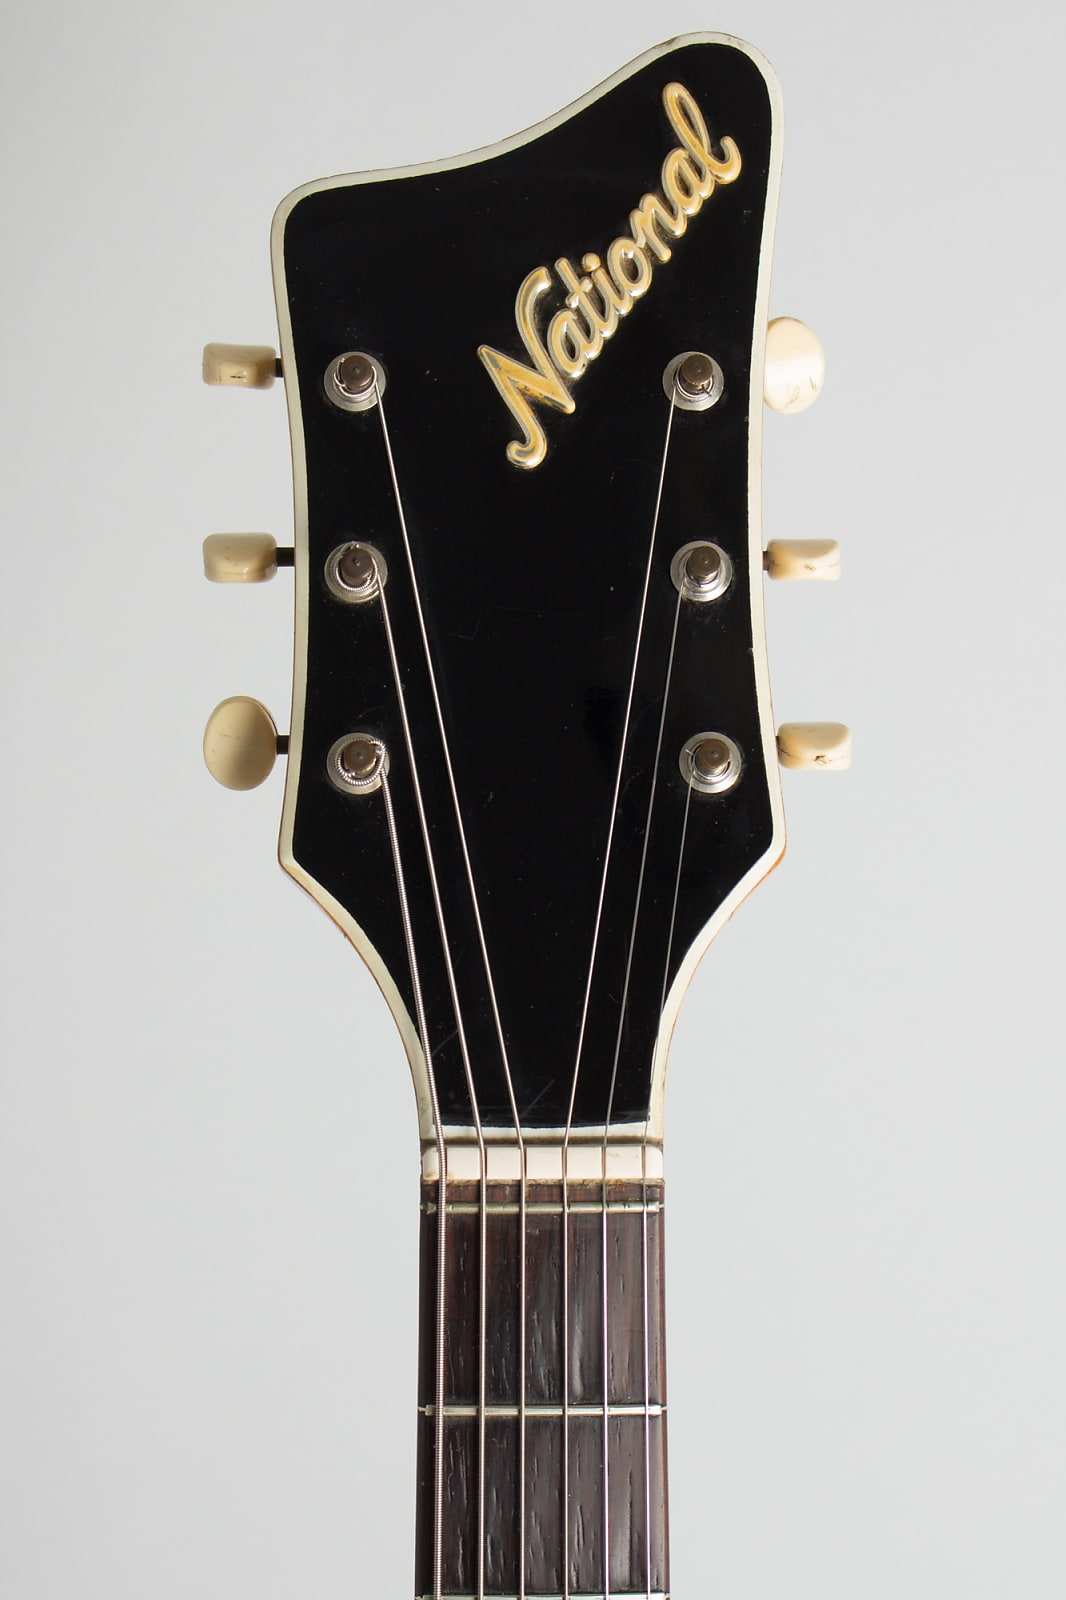 National  Studio 66 owned and used by Elliott Sharp Semi-Hollow Body Electric Guitar (1961), ser. #T-74352, black gig bag case.